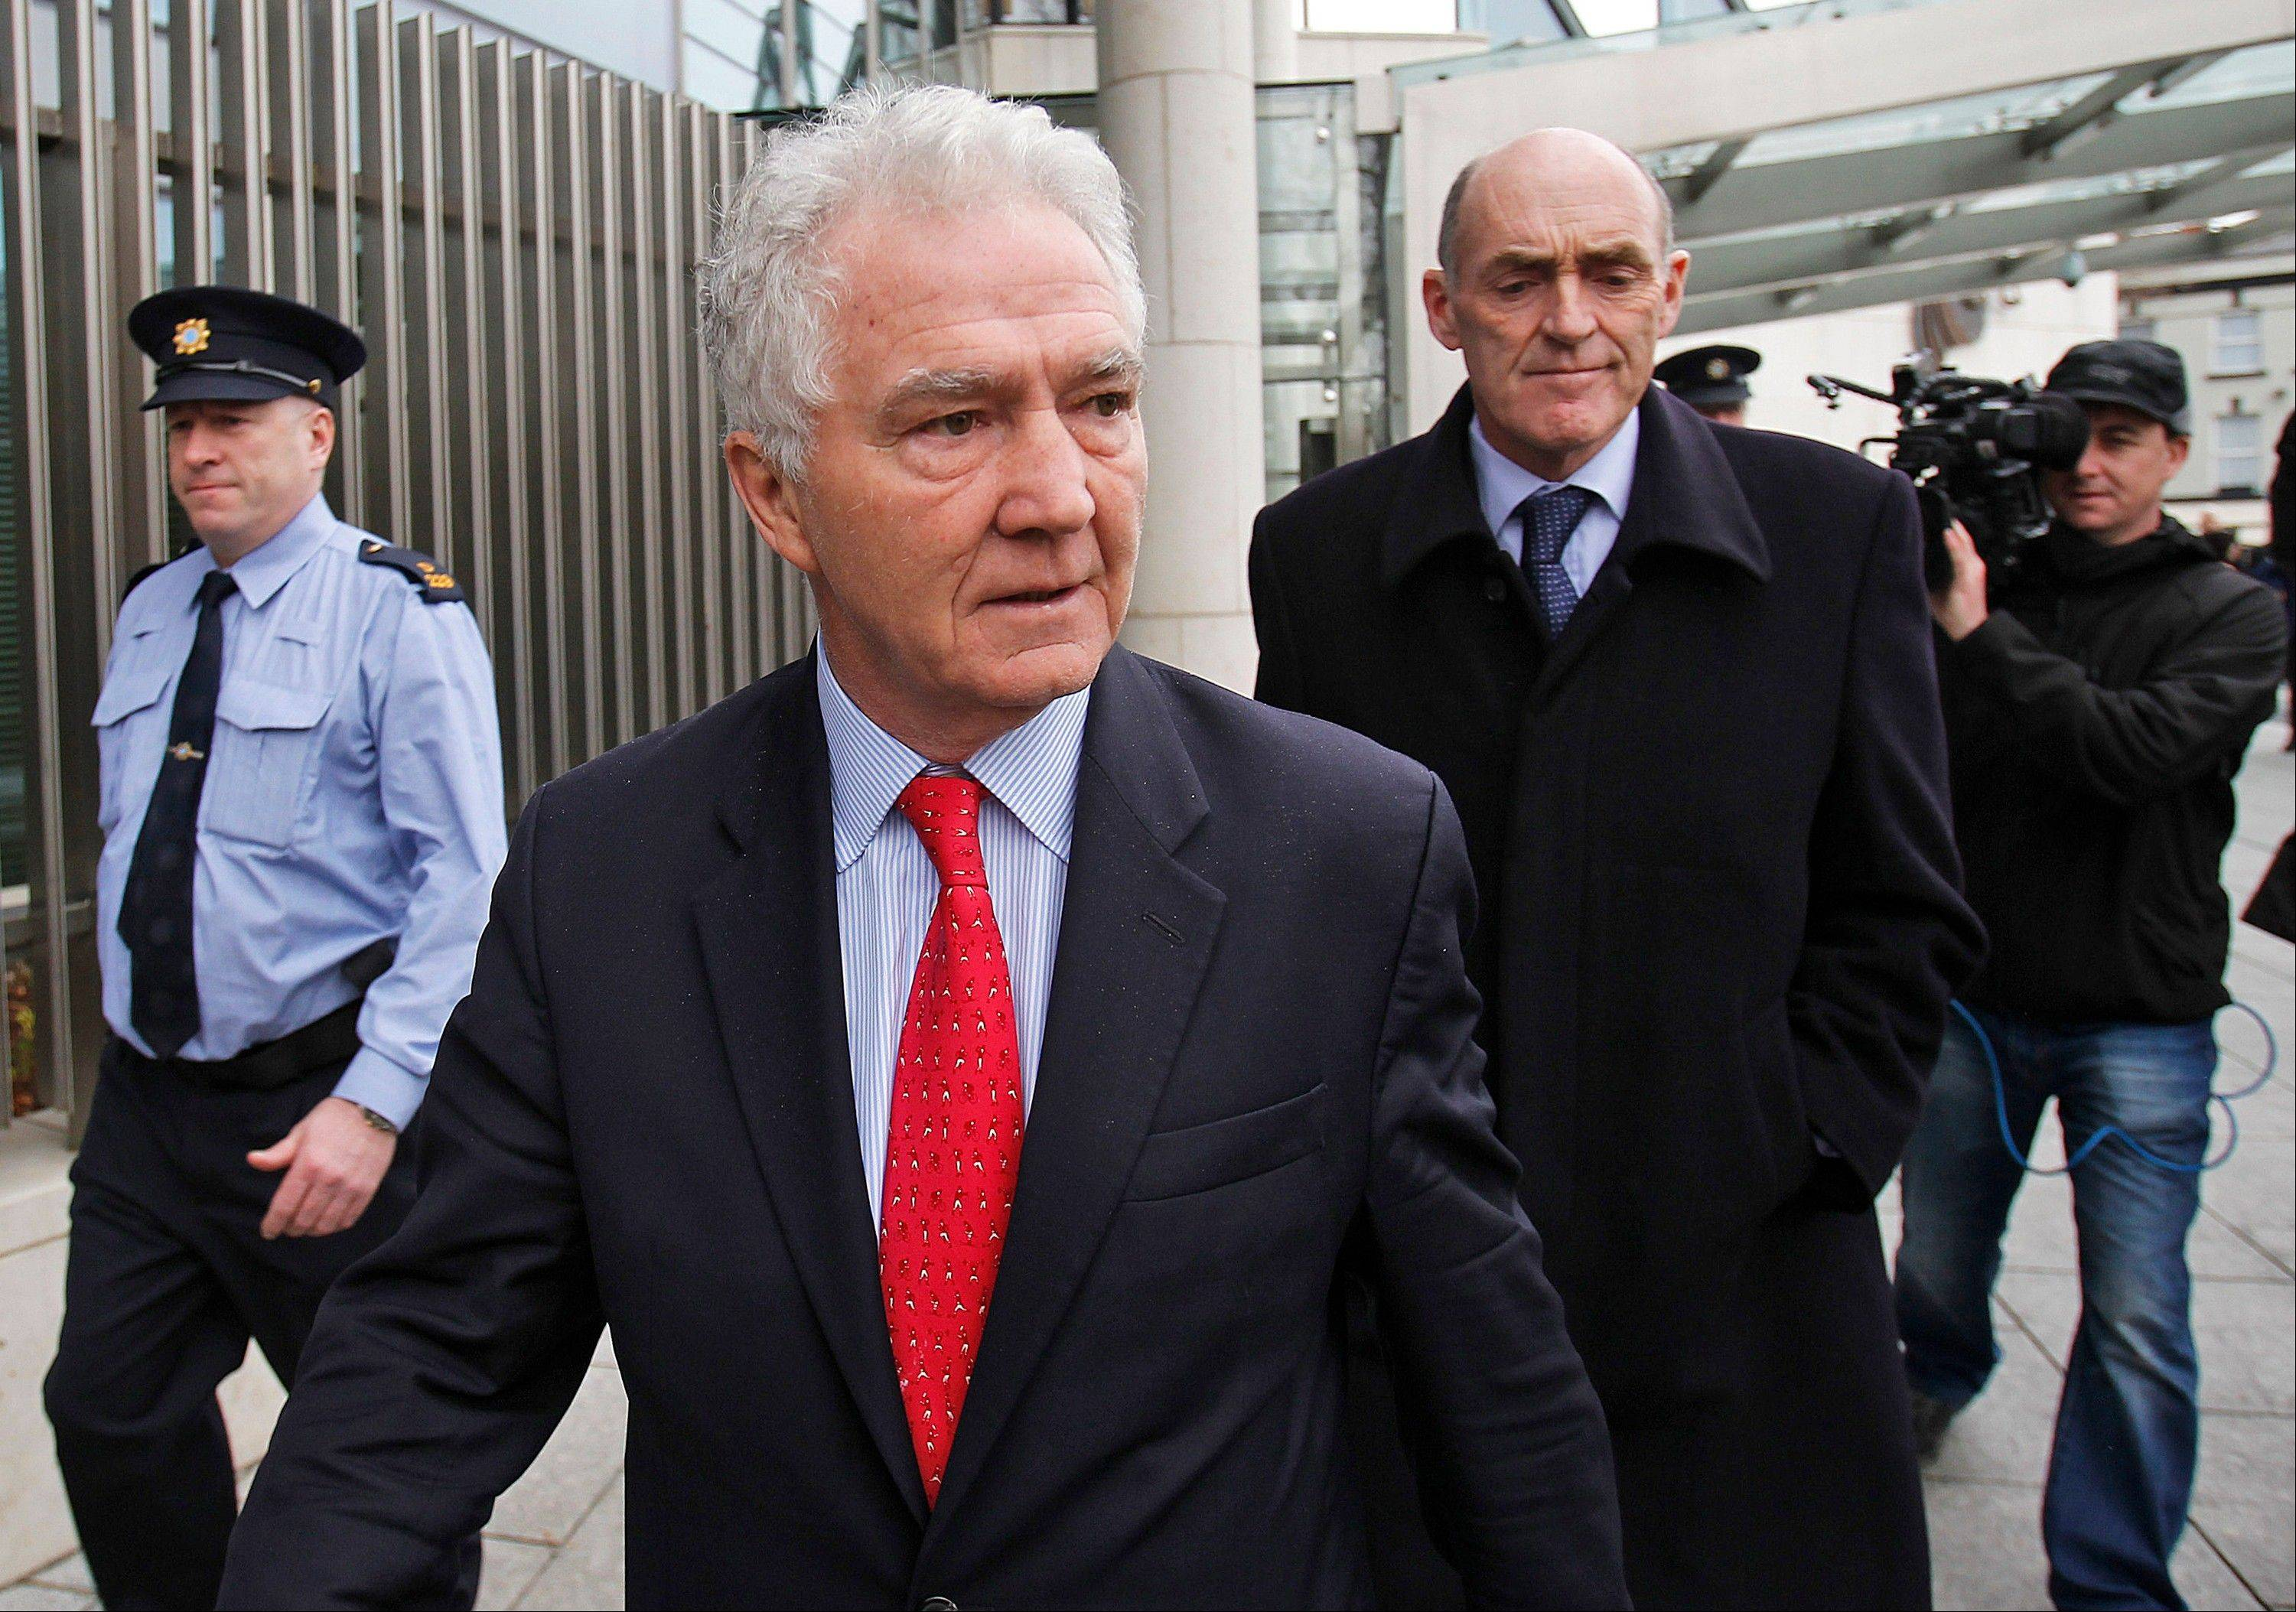 Former Anglo Irish Bank chief executive and chairman Sean FitzPatrick, front center, leaves District Court, in Dublin, Ireland, after being given bail appearing on charges of giving auditors false or misleading information on directors� loans over a five-year period, Friday Dec. 21, 2012. The 64-year old former chief of Ireland�s collapsed Anglo Irish Bank, FitzPatrick, has been arraigned Friday on fraud charges of misleading auditors and shareholders alleging over $180 million in personal loans.